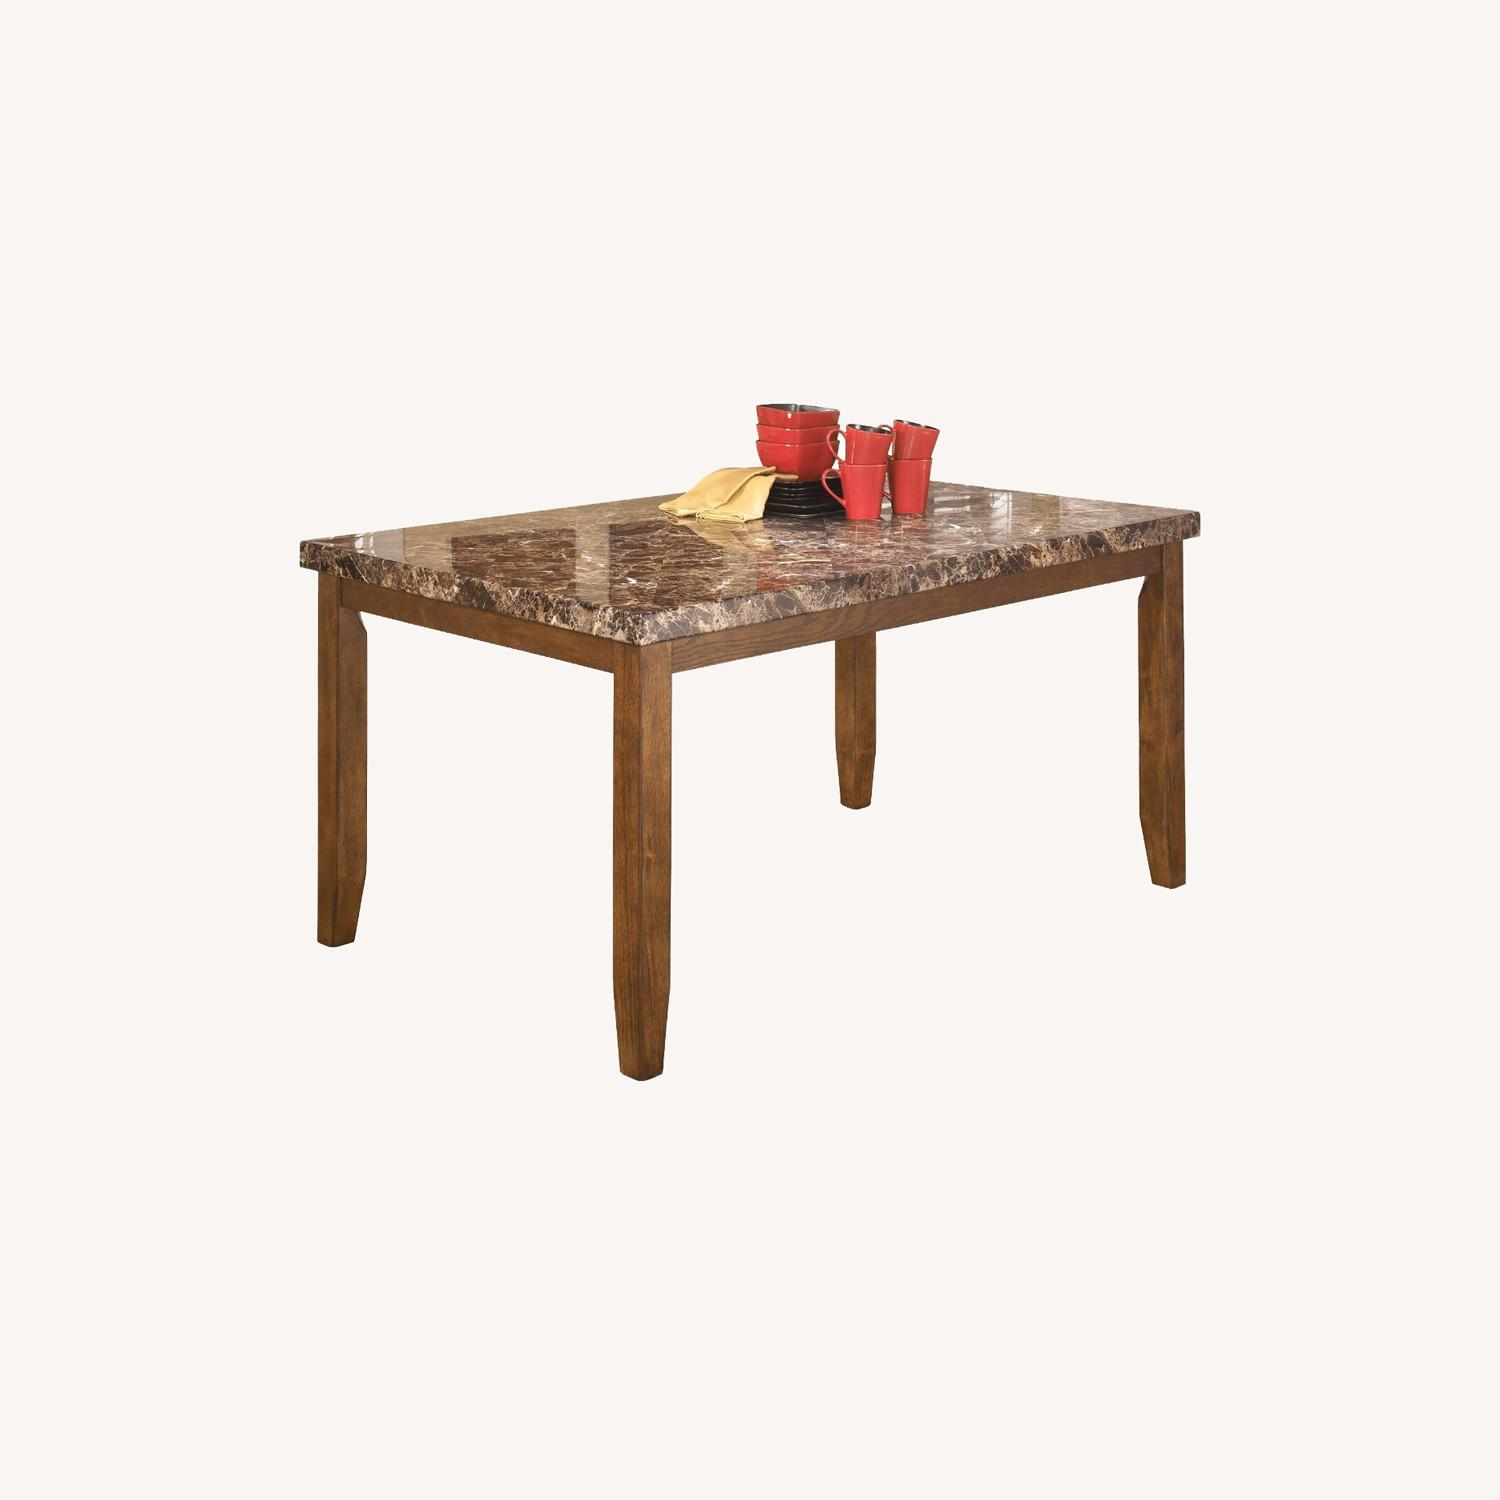 Bob's Discount Rectangular Dining Table with 6 Chair - image-0